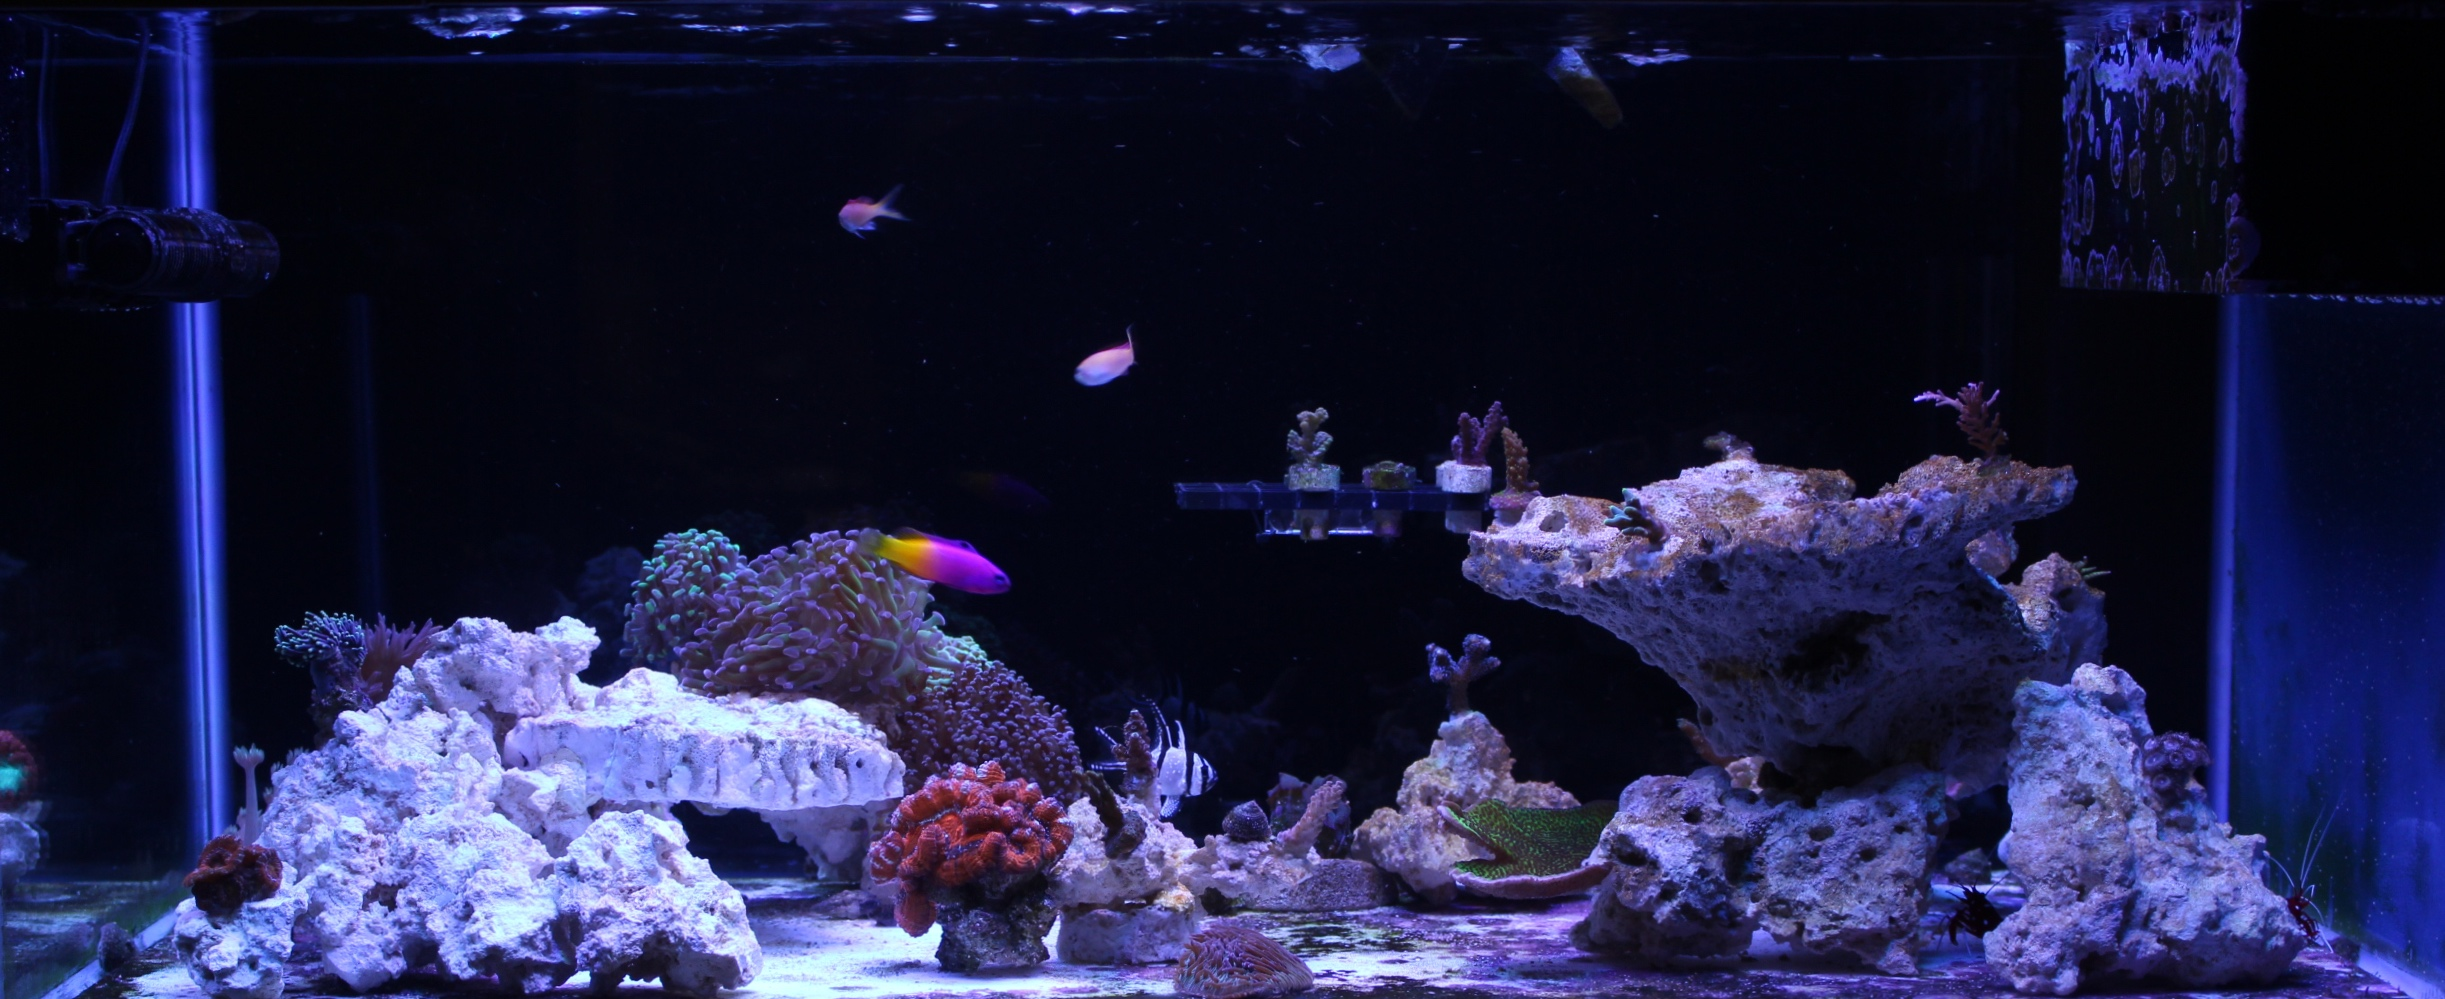 FTS March 19, 2017 (New Scape)